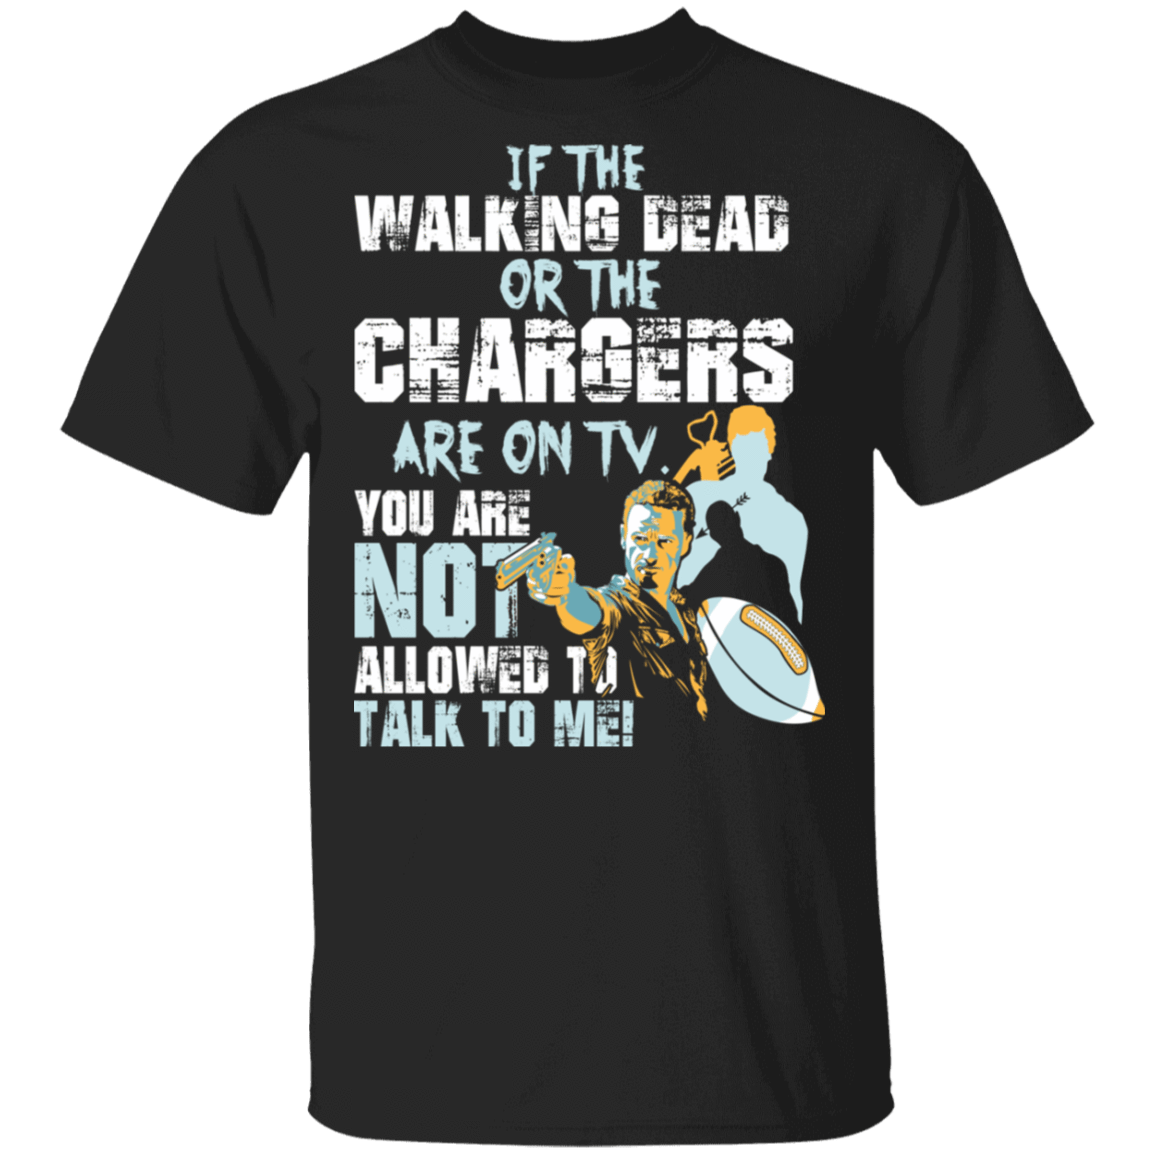 If The Walking Dead Or The Chargers Are On TV You Are Not Allowed To Talkf To Me T-Shirts & Hoodies 1049-9953-82801955-48144 - Tee Ript